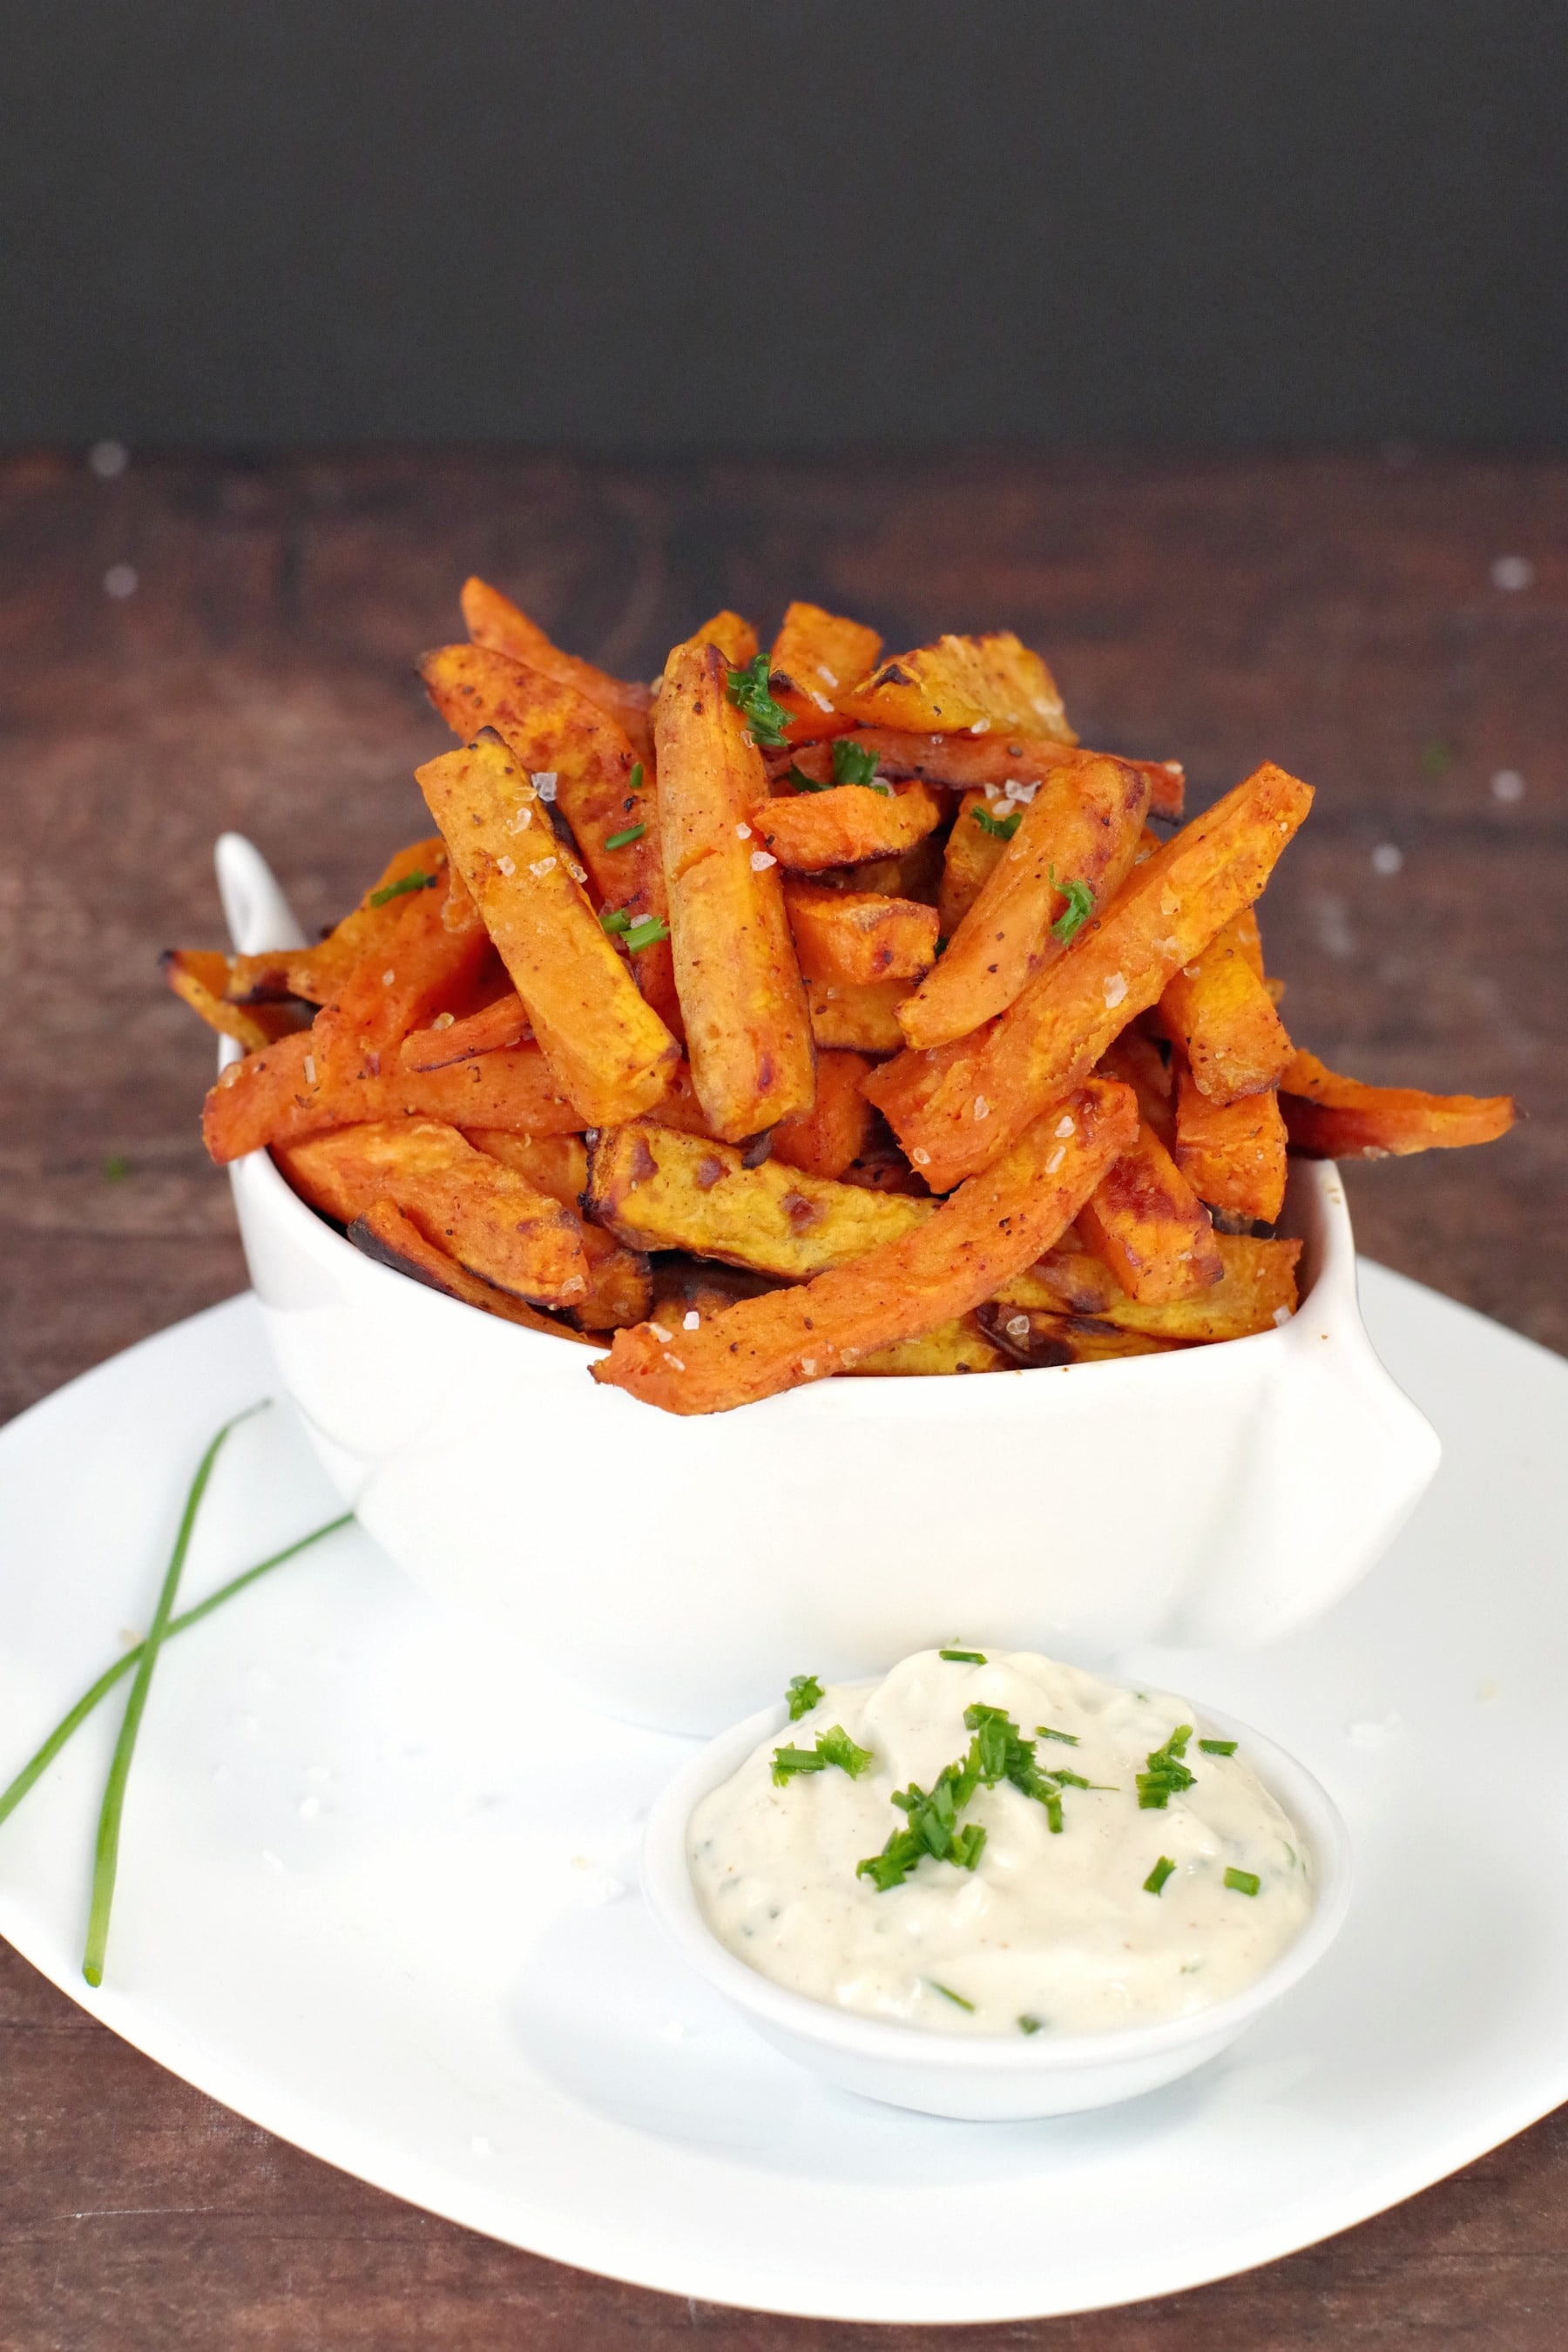 Moxie's sweet potato fries and dip recipe